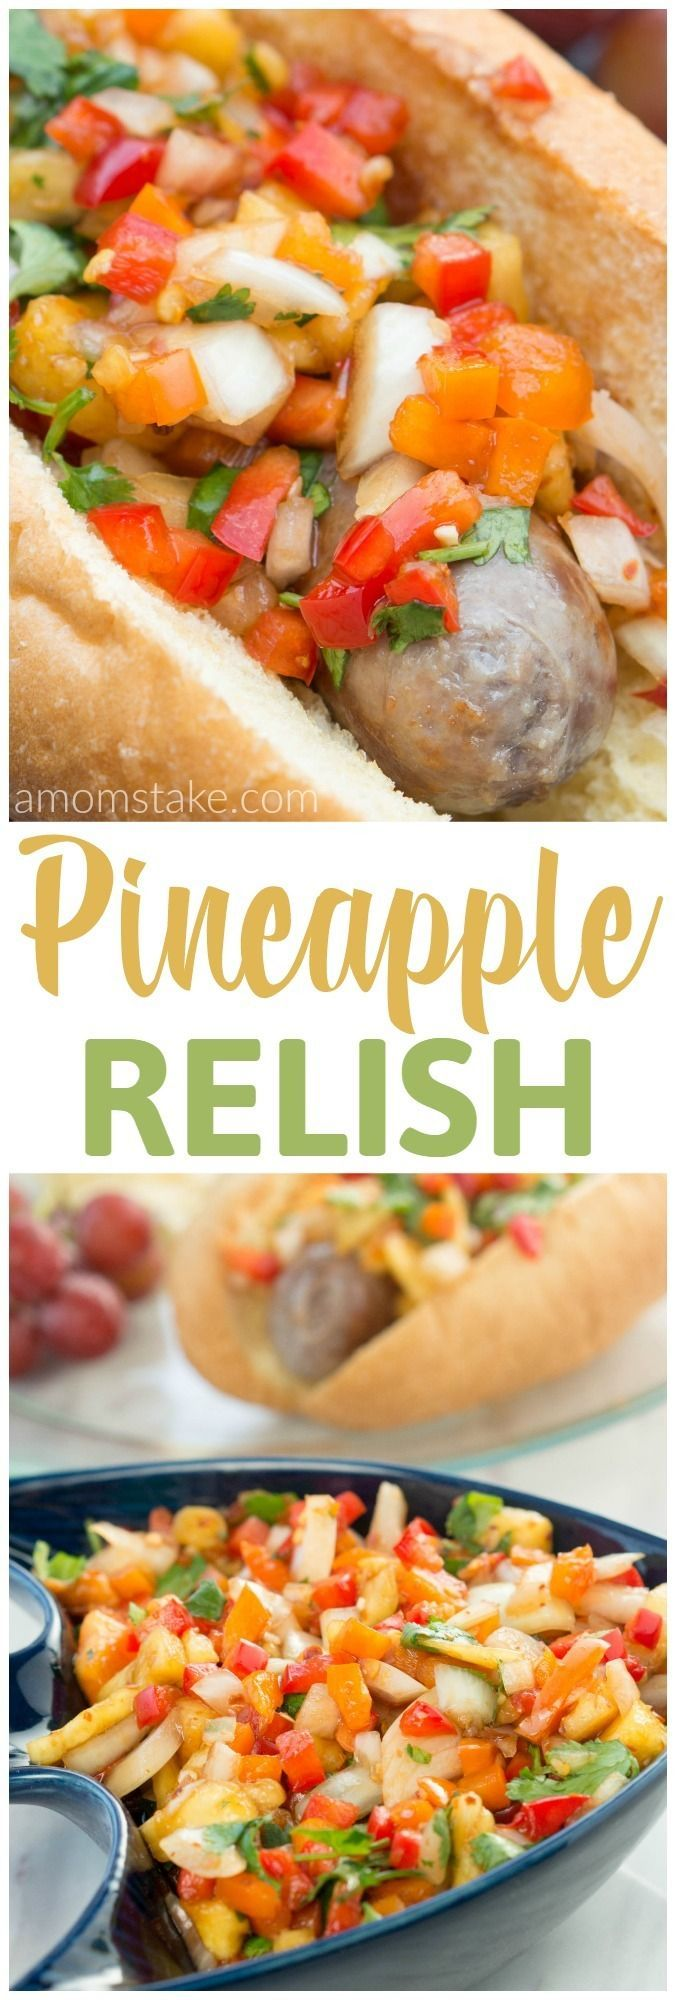 This pineapple relish will be the perfect garnish for all your favorite recipes! Serve it on top of brats, hamburgers, chicken, steak, or fish! Yummy side dish to add to your picnic or dinner recipe! #ad @Jvillesausage